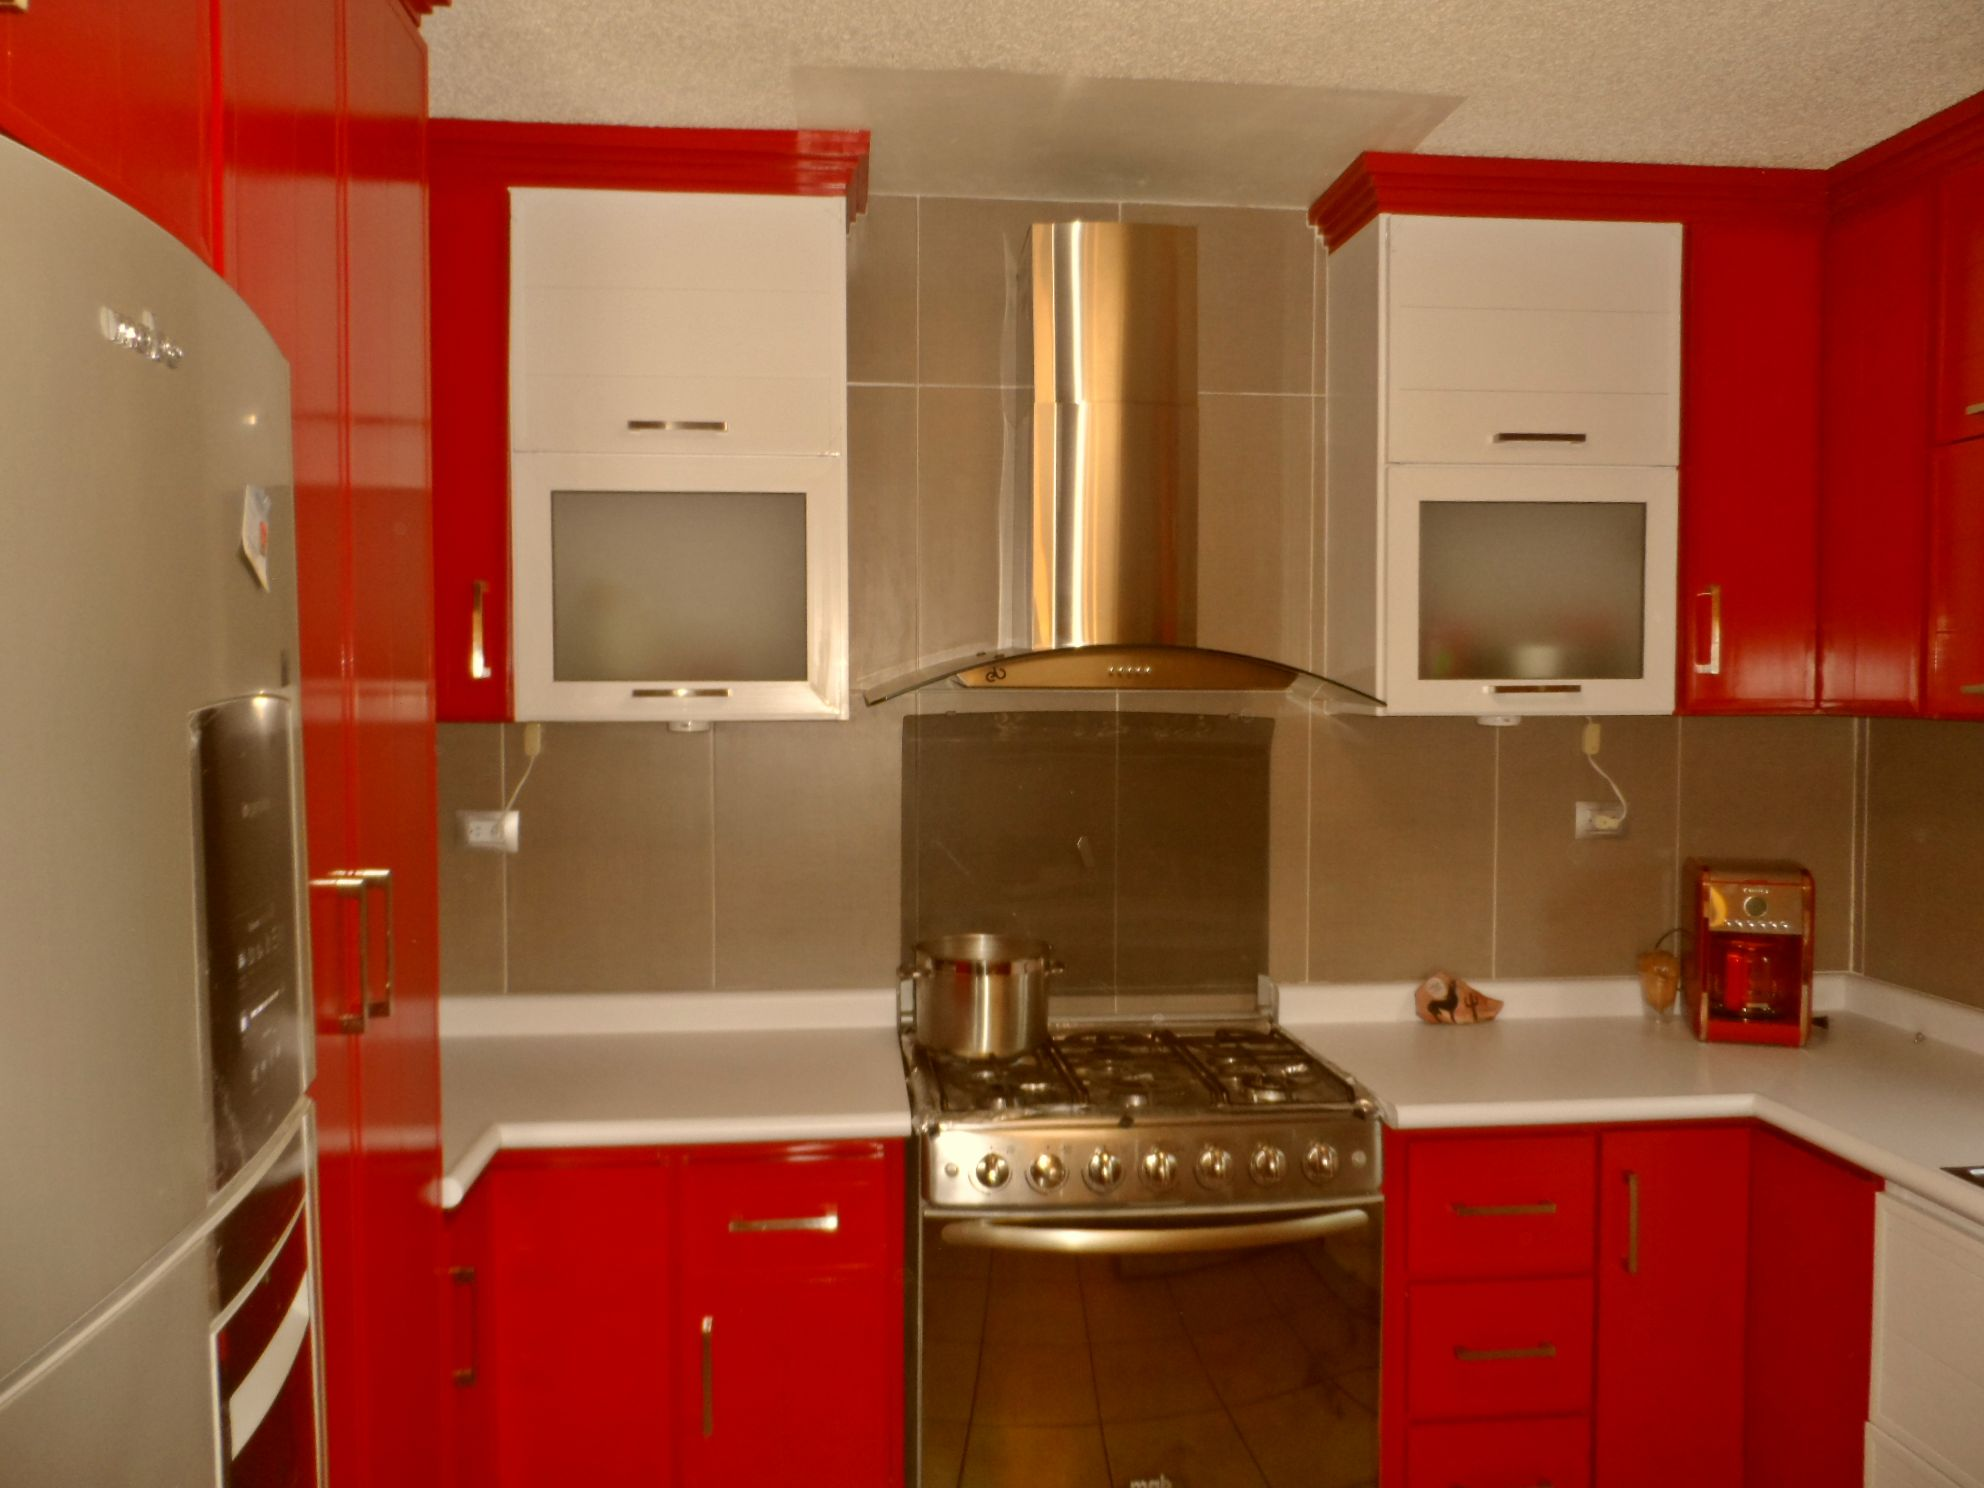 Red Rigid Plastic Cabinets. Small Kitchen Clocks. White Kitchen With Peninsula. Update Kitchen Island Ideas. Kitchen Lighting Ideas For Low Ceilings. Ikea Kitchen Ideas And Inspiration. Photos Of Small Kitchen Makeovers. Marble Kitchen Islands. Kitchen Cabinet Molding Ideas